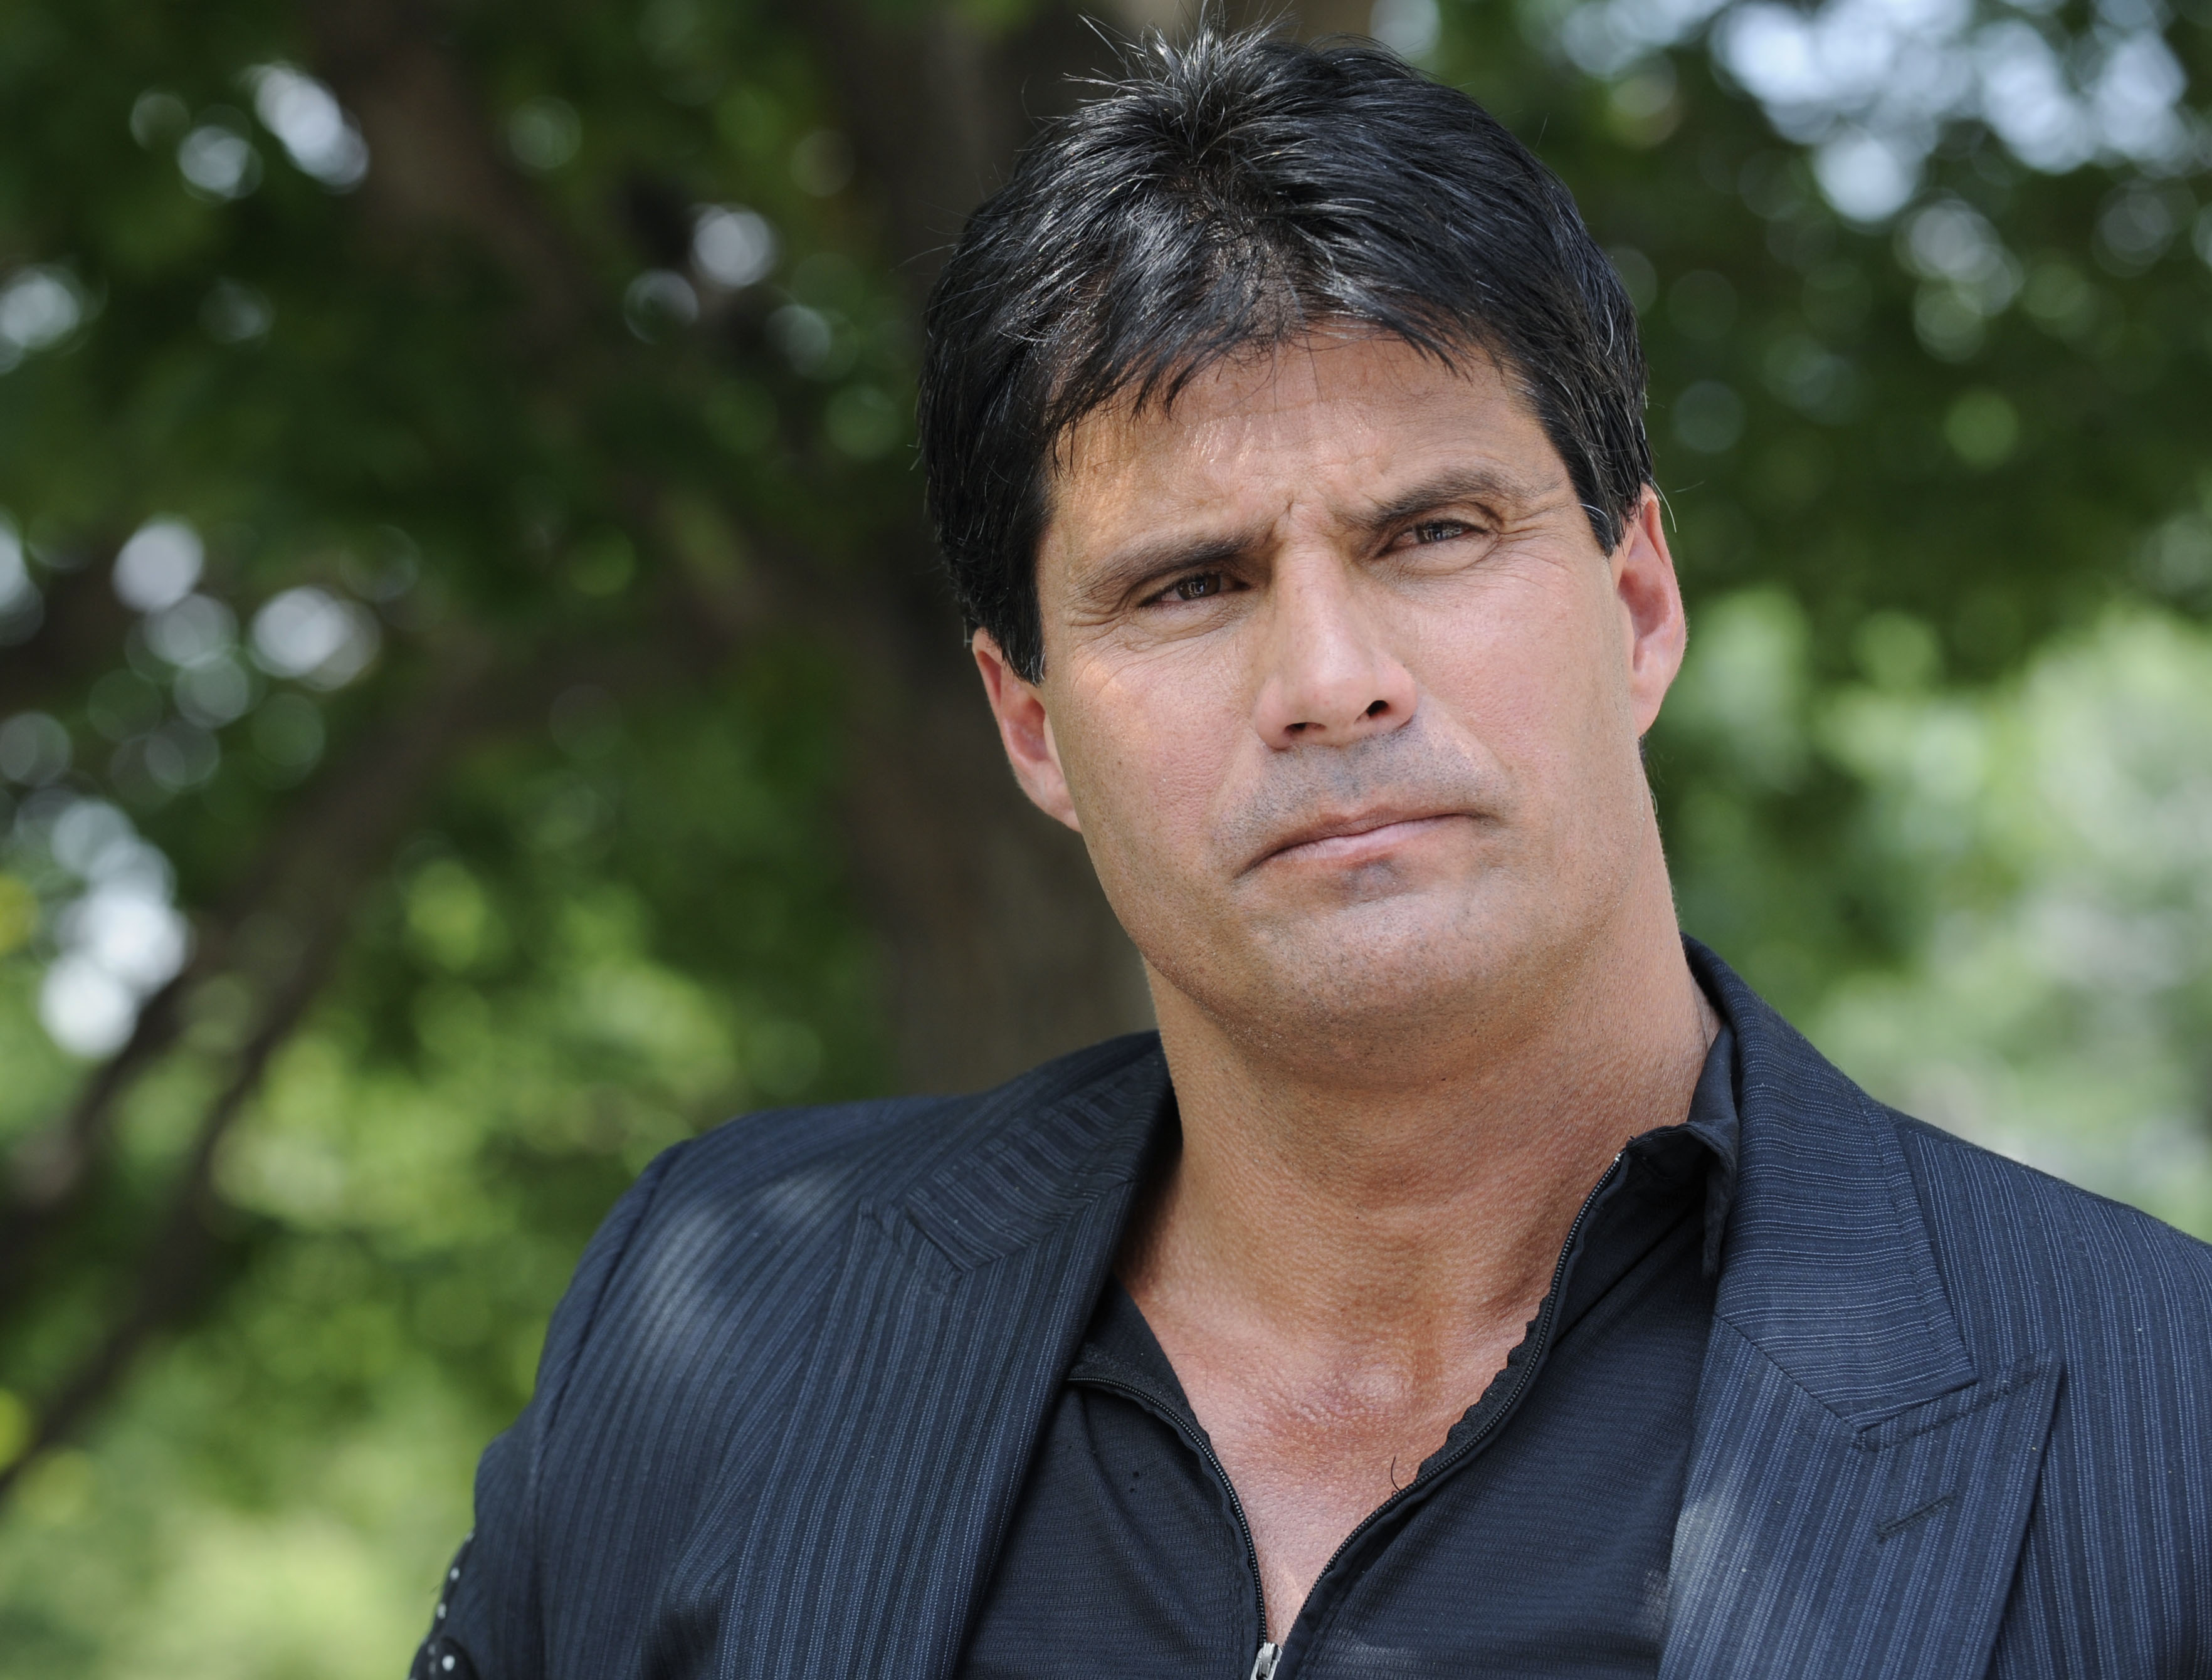 FILE - This June 3, 2010, file photo shows Jose Canseco talking with reporters in Washington. A Japanese economic plan has prompted Jose Canseco to jump into a whole new field, financial advice. he former slugging outfielder went on a Twitter rant late We